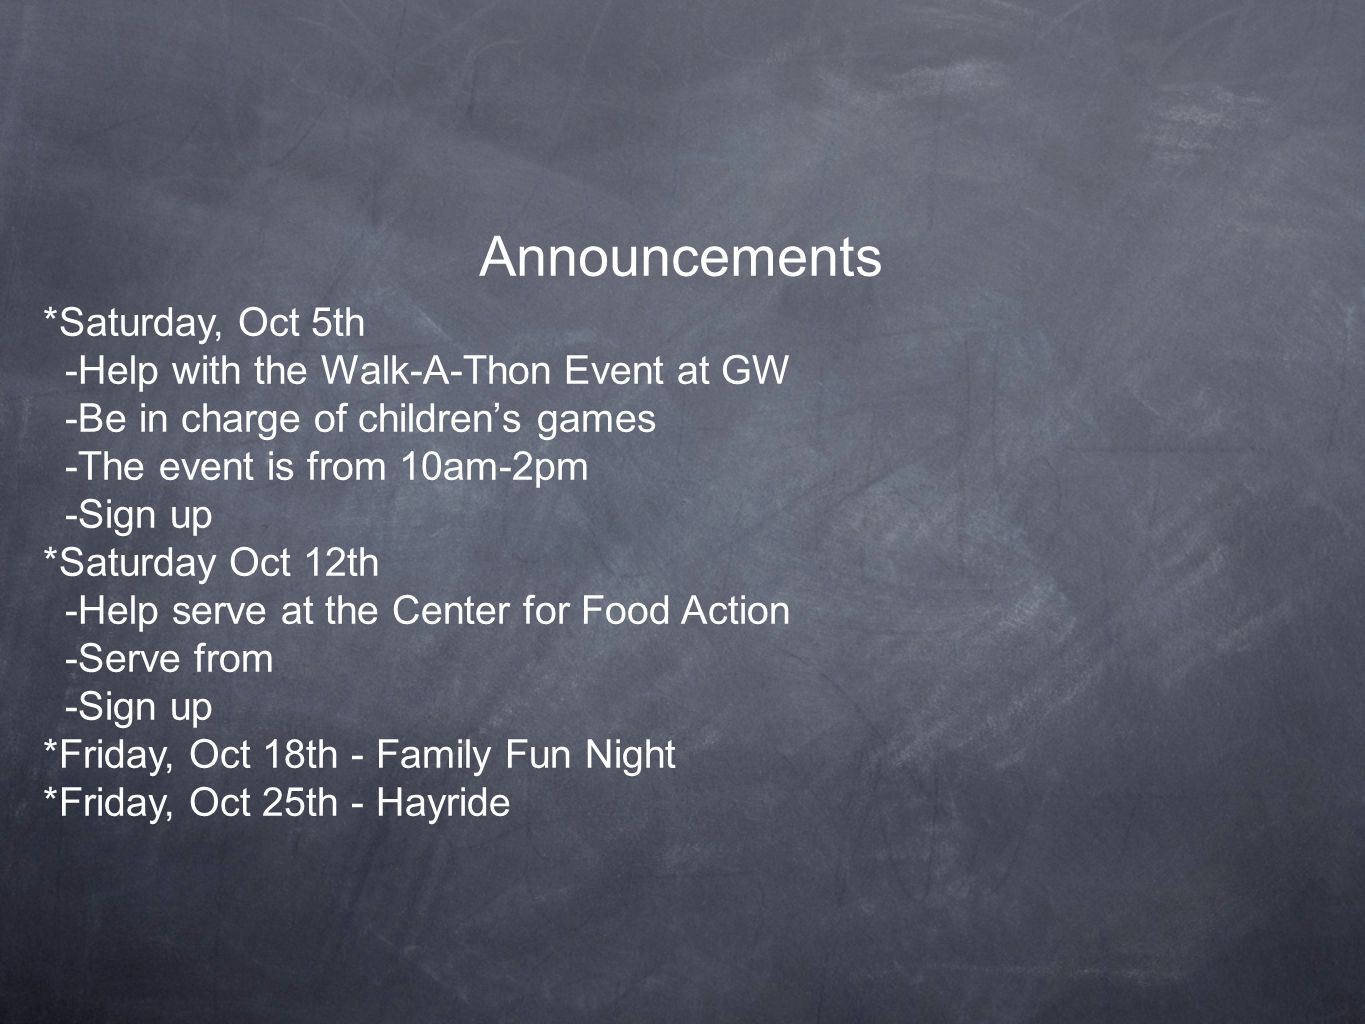 Announcements *Saturday, Oct 5th -Help with the Walk-A-Thon Event at GW -Be in charge of children's games -The event is from 10am-2pm -Sign up *Saturday Oct 12th -Help serve at the Center for Food Action -Serve from -Sign up *Friday, Oct 18th - Family Fun Night *Friday, Oct 25th - Hayride